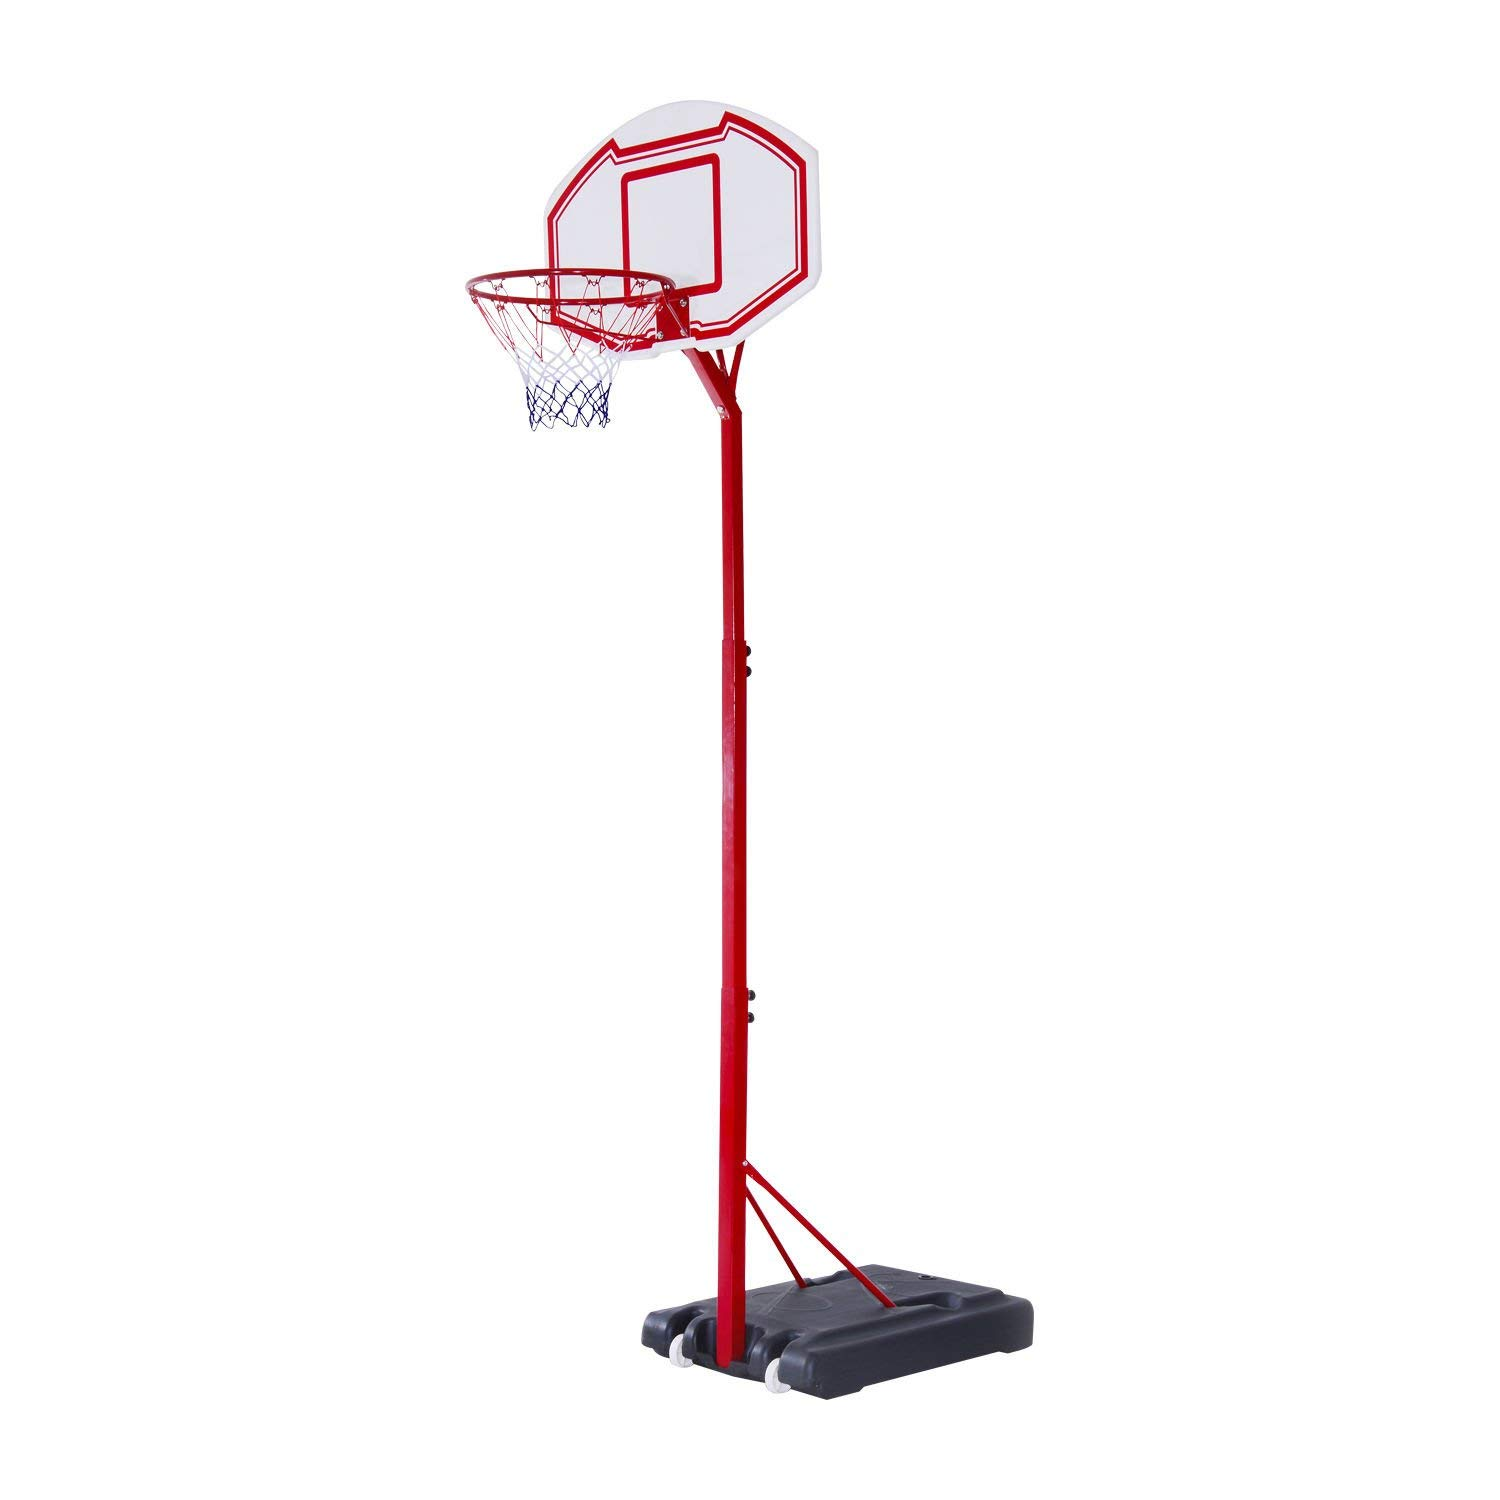 Soozier 10' Height Adjustable Basketball Hoop